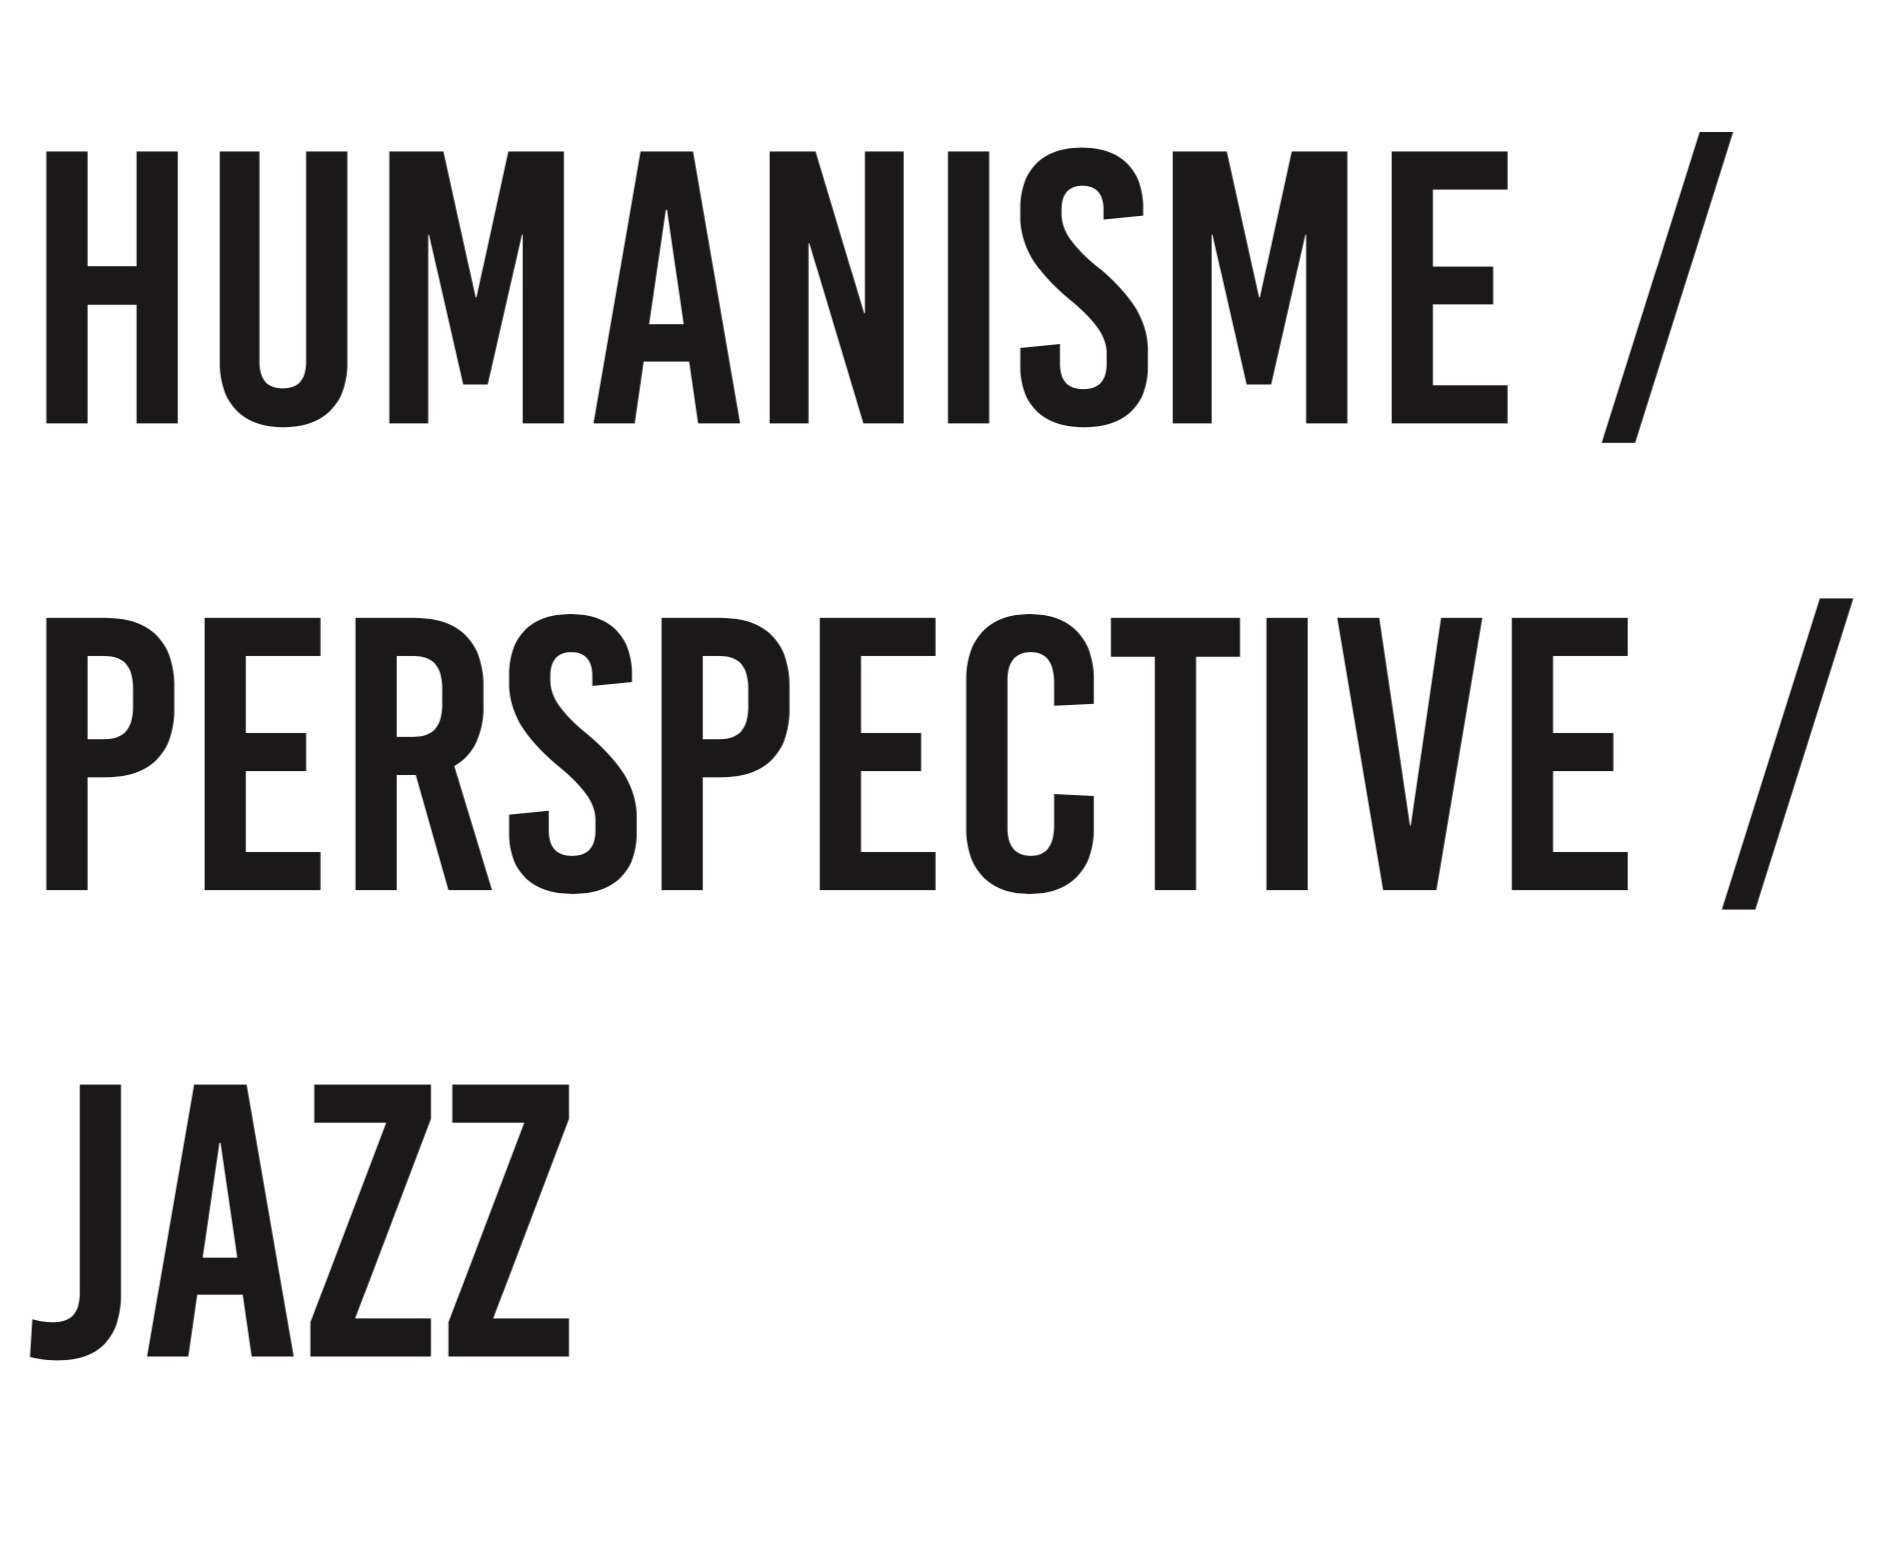 humanisme / perspective / jazz